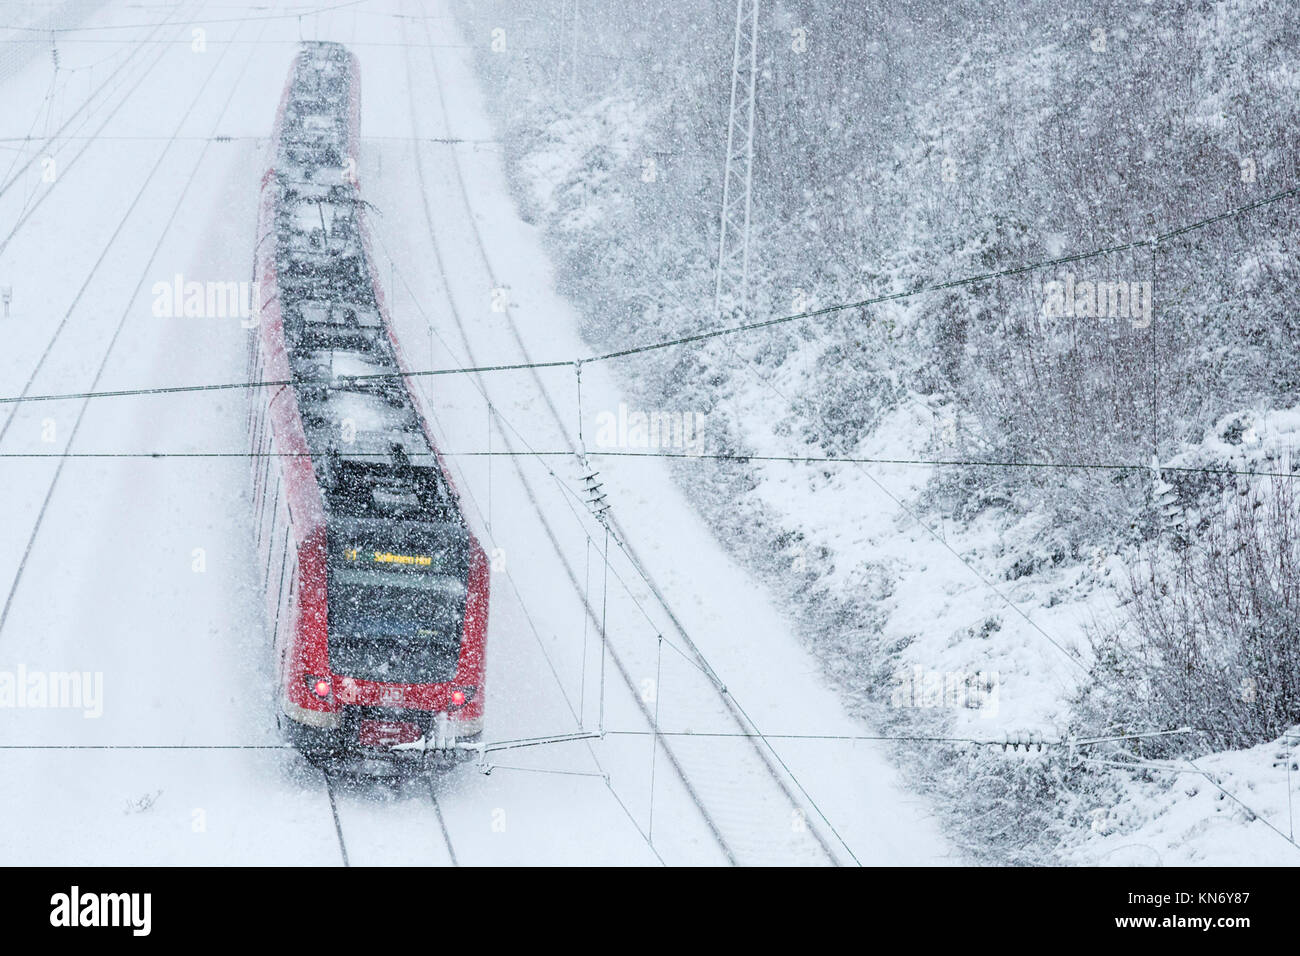 German S-Bahn suburban train in snowy weather, Mülheim an der Ruhr, Germany Stock Photo